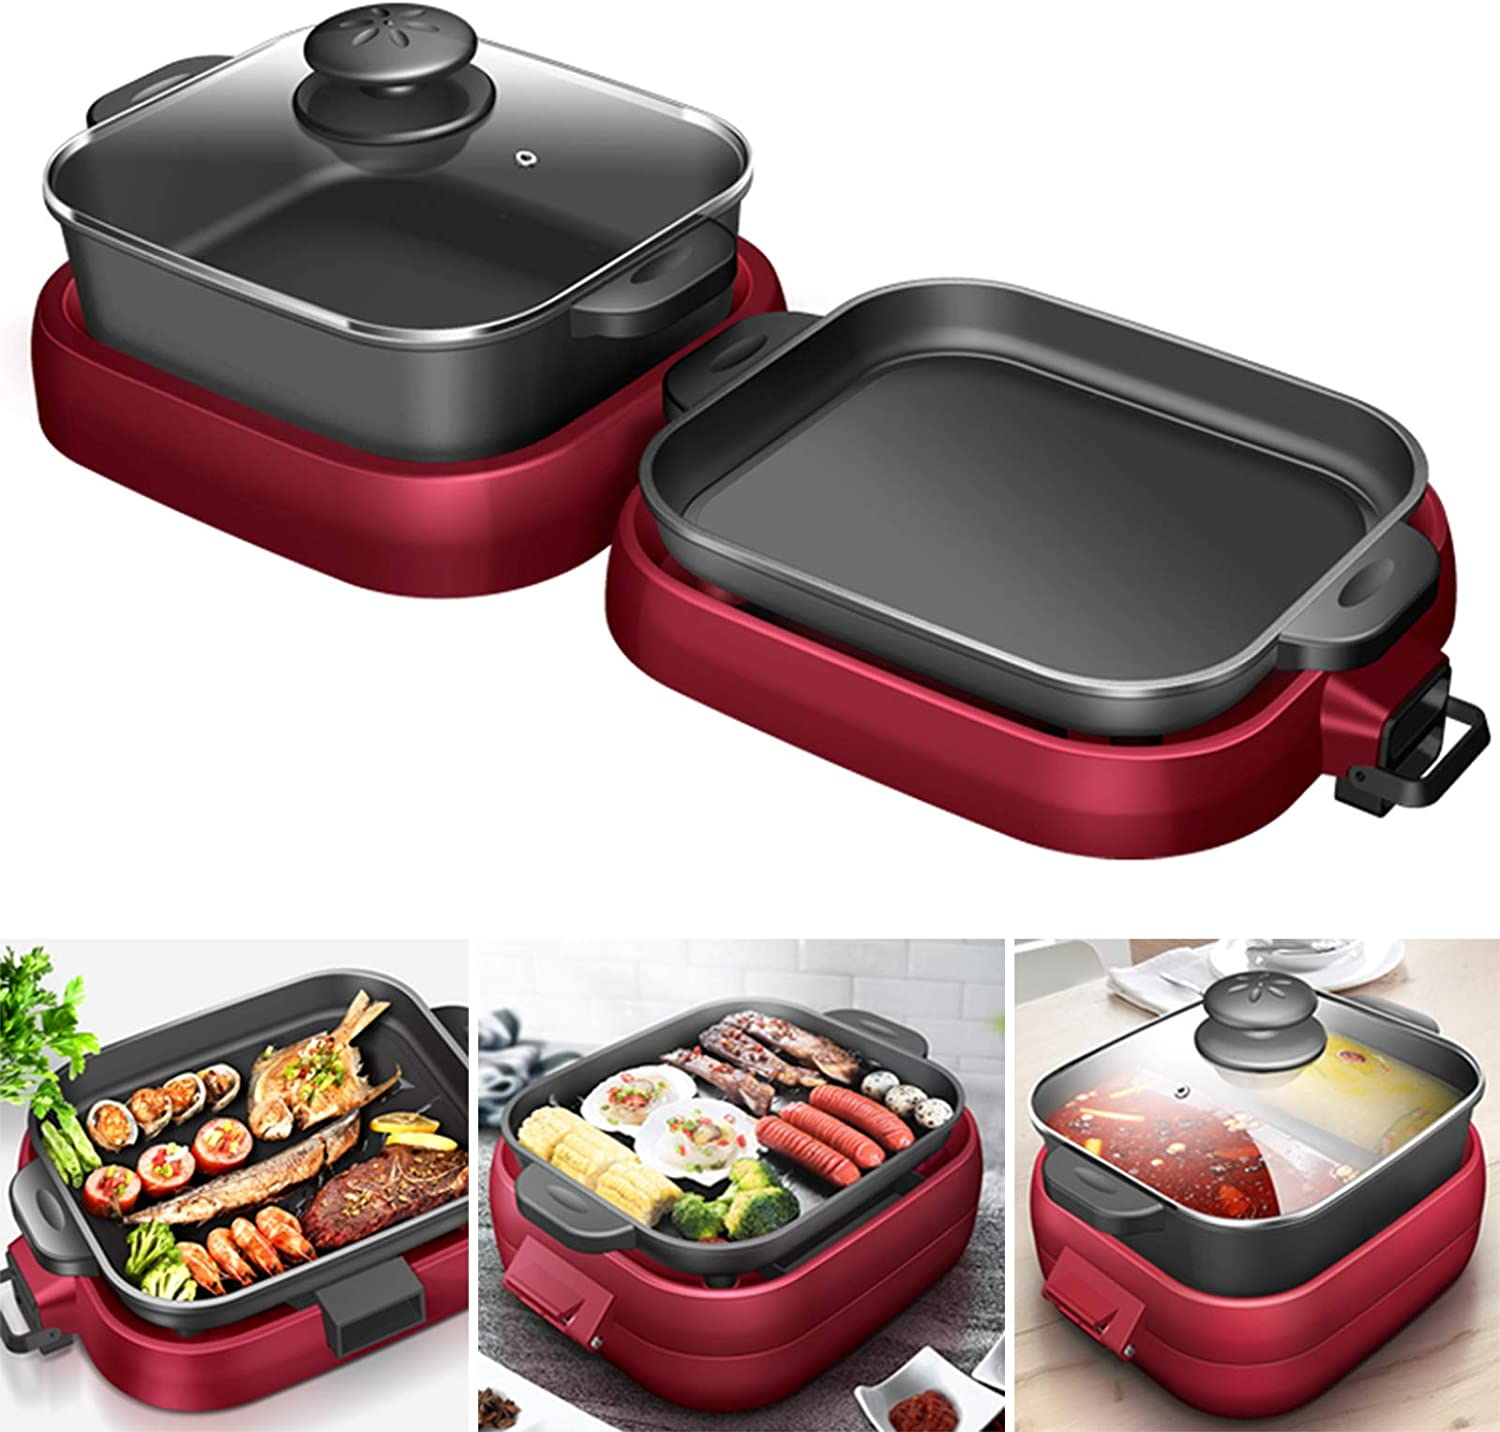 YXMxxm 2-in-1 Electric Grill & Hot Pot, Foldable Roasted Baking Pan Dish Pot,Separately Dual Temperature Control BBQ and Smokeless Shabu-Pot,2000W